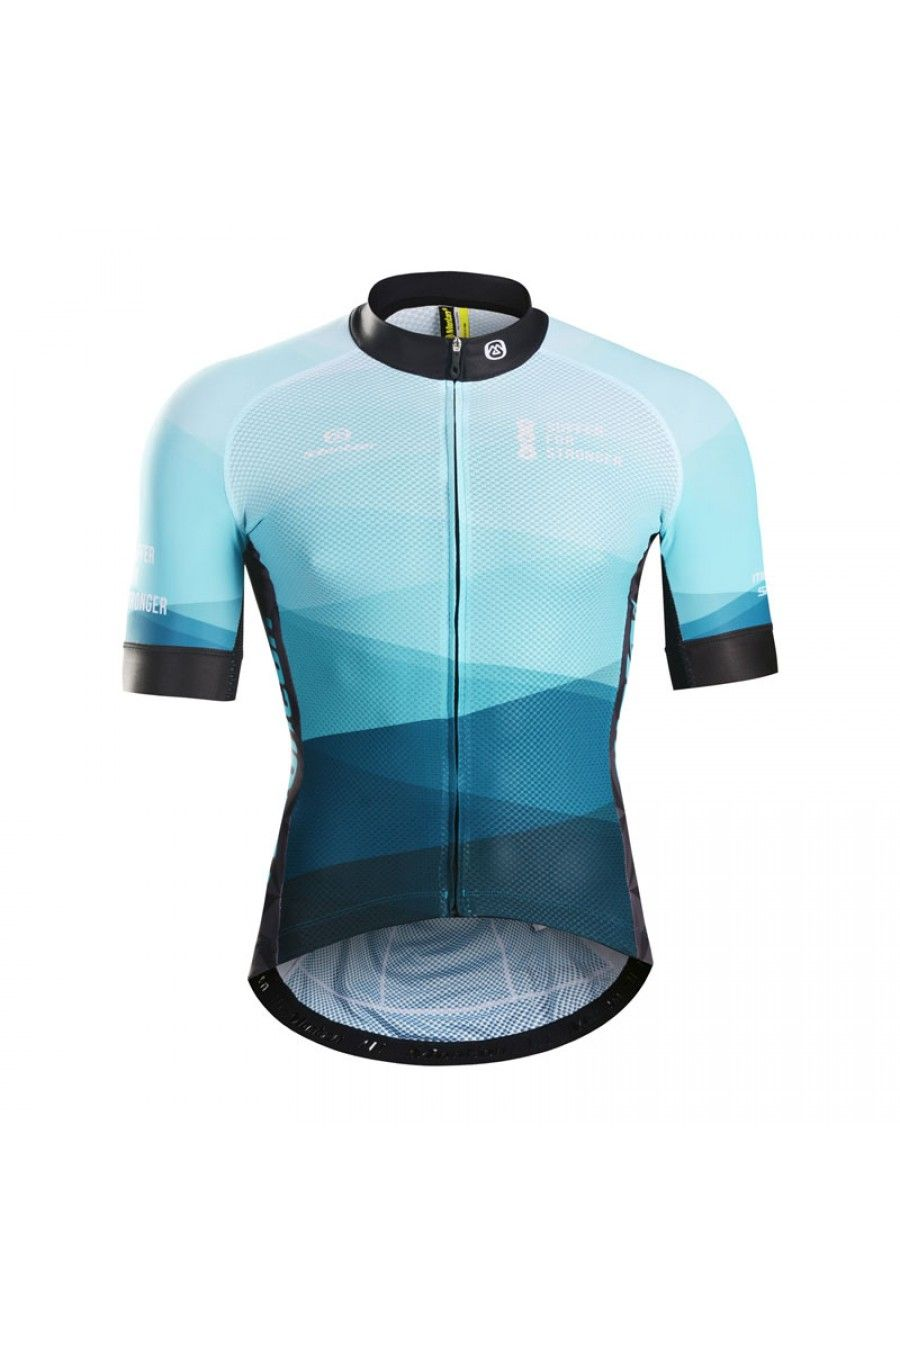 Monton 2016 Mens Road Cycling Jersey Aurora Cycling Outfit